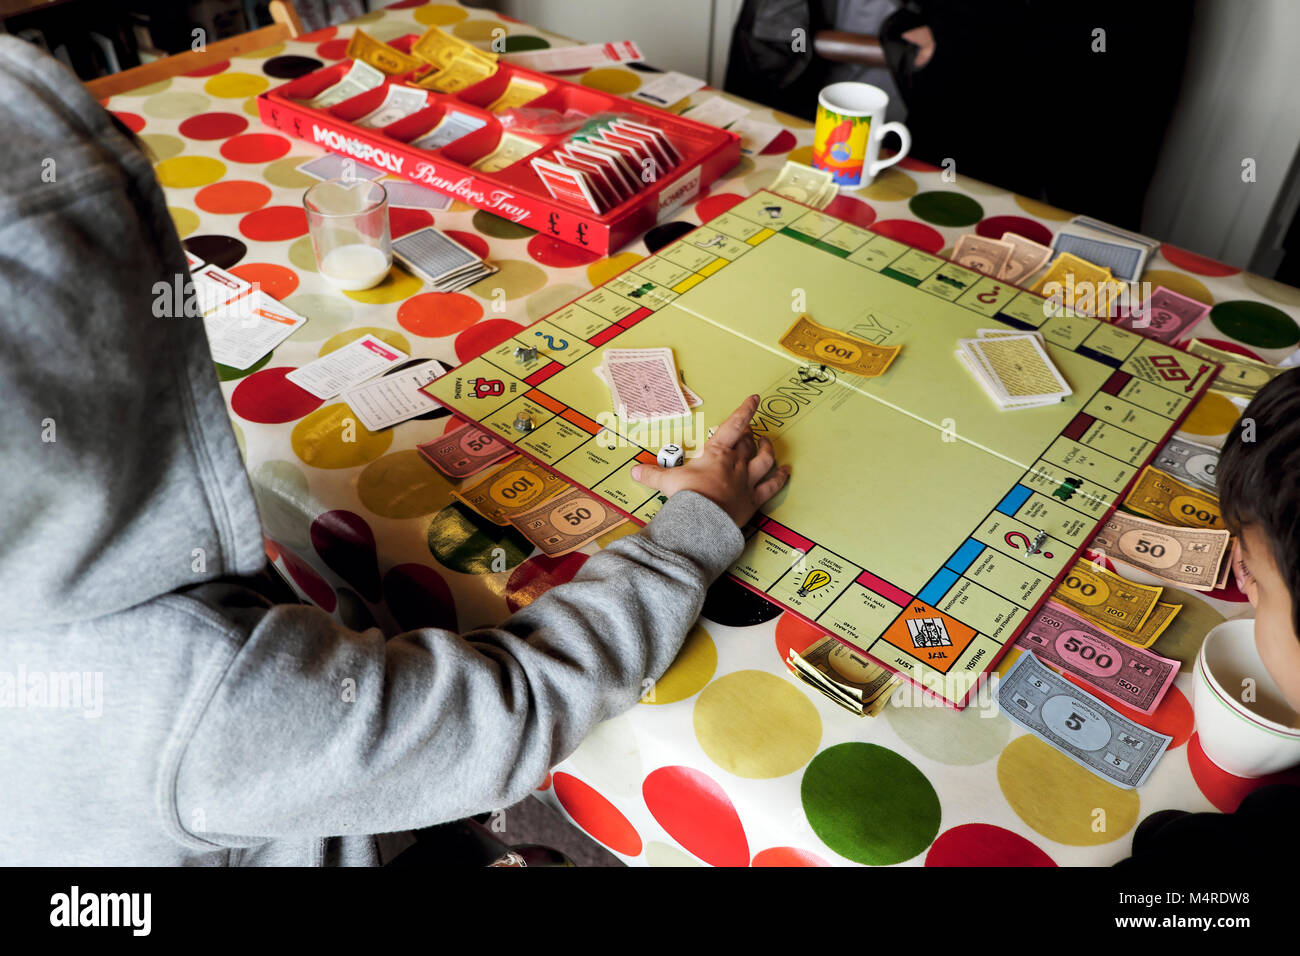 What Is Monopoly Capital?